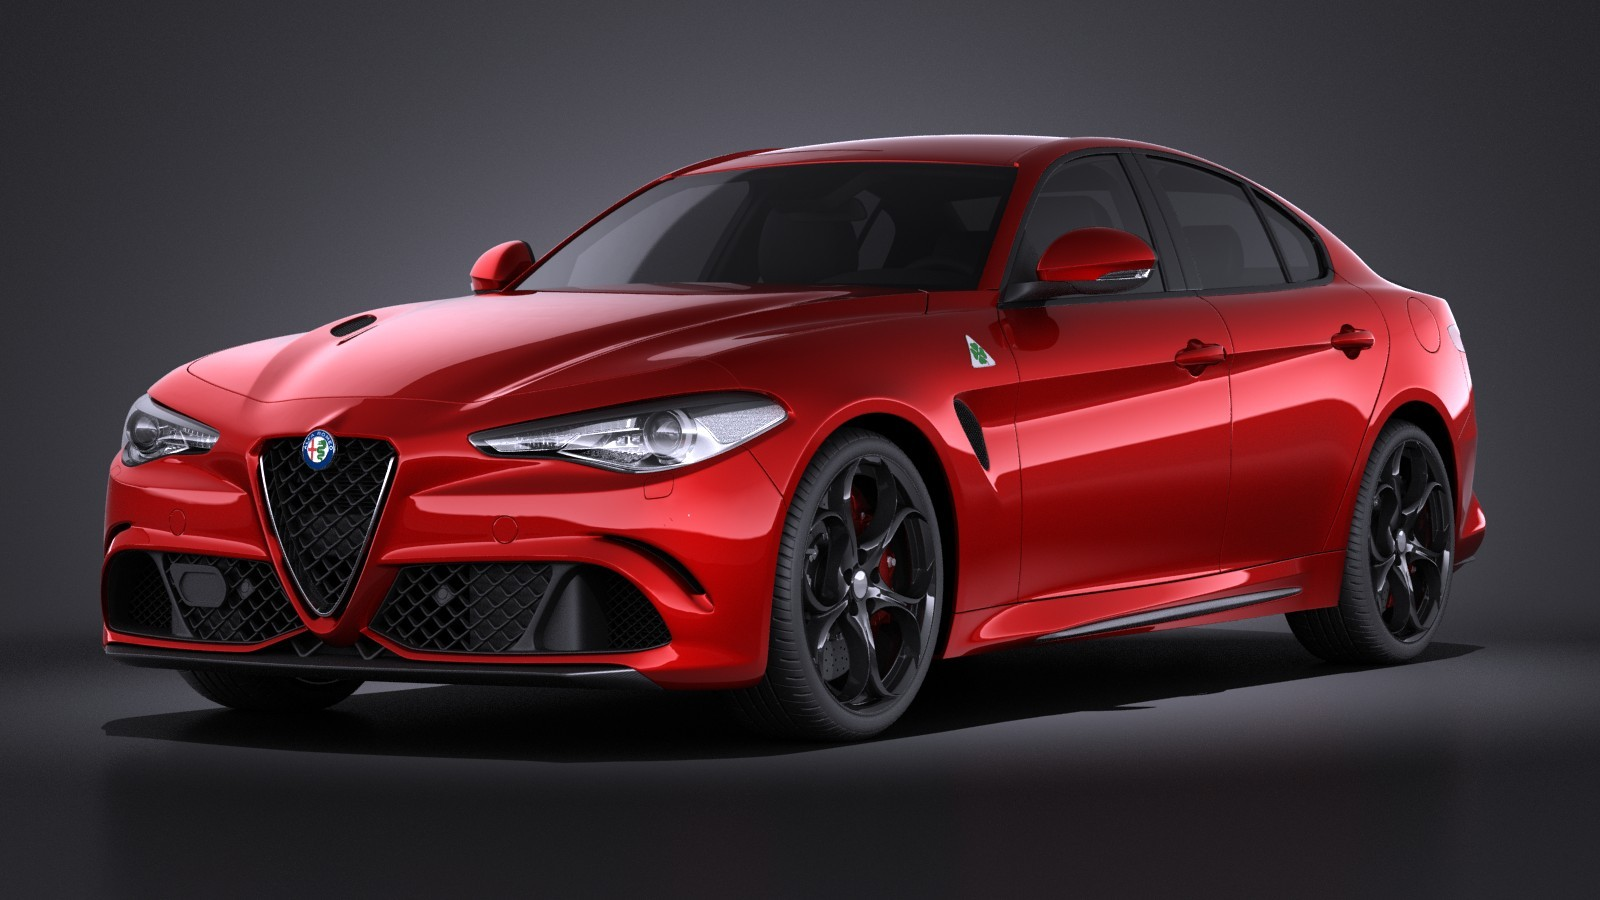 alfa romeo giulia quadrifoglio 2016 vray sedan car vehicles 3d models. Black Bedroom Furniture Sets. Home Design Ideas